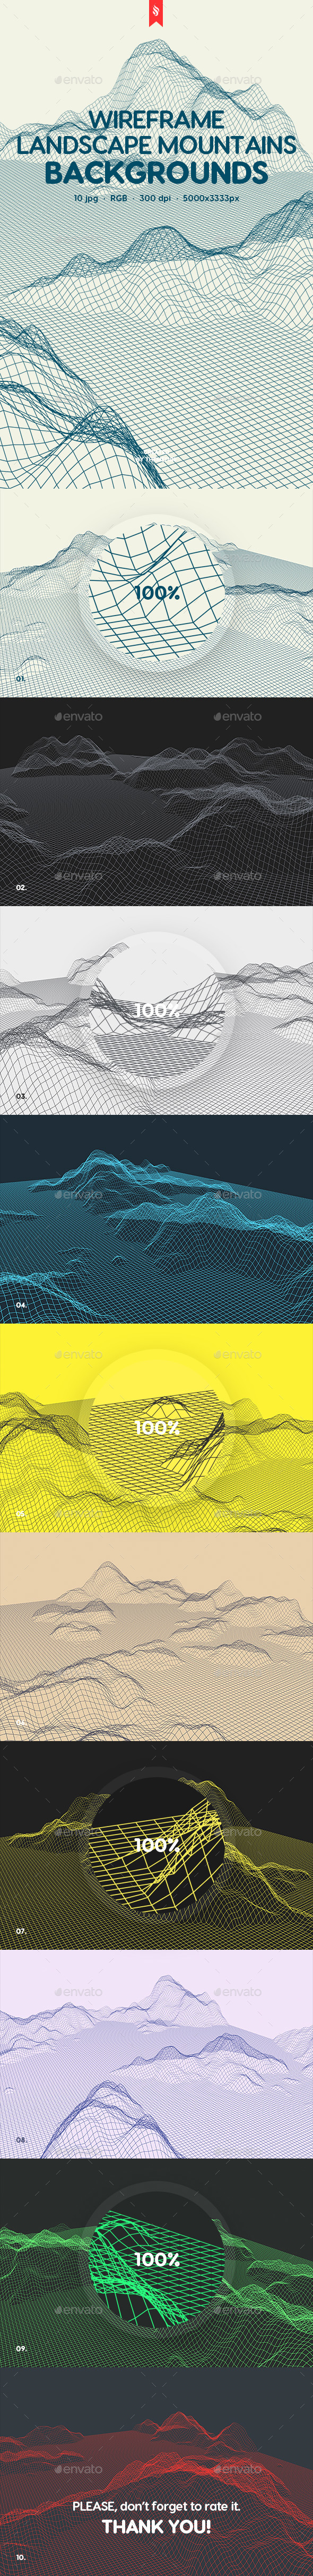 Wireframe Landscape Mountains Backgrounds - Backgrounds Graphics